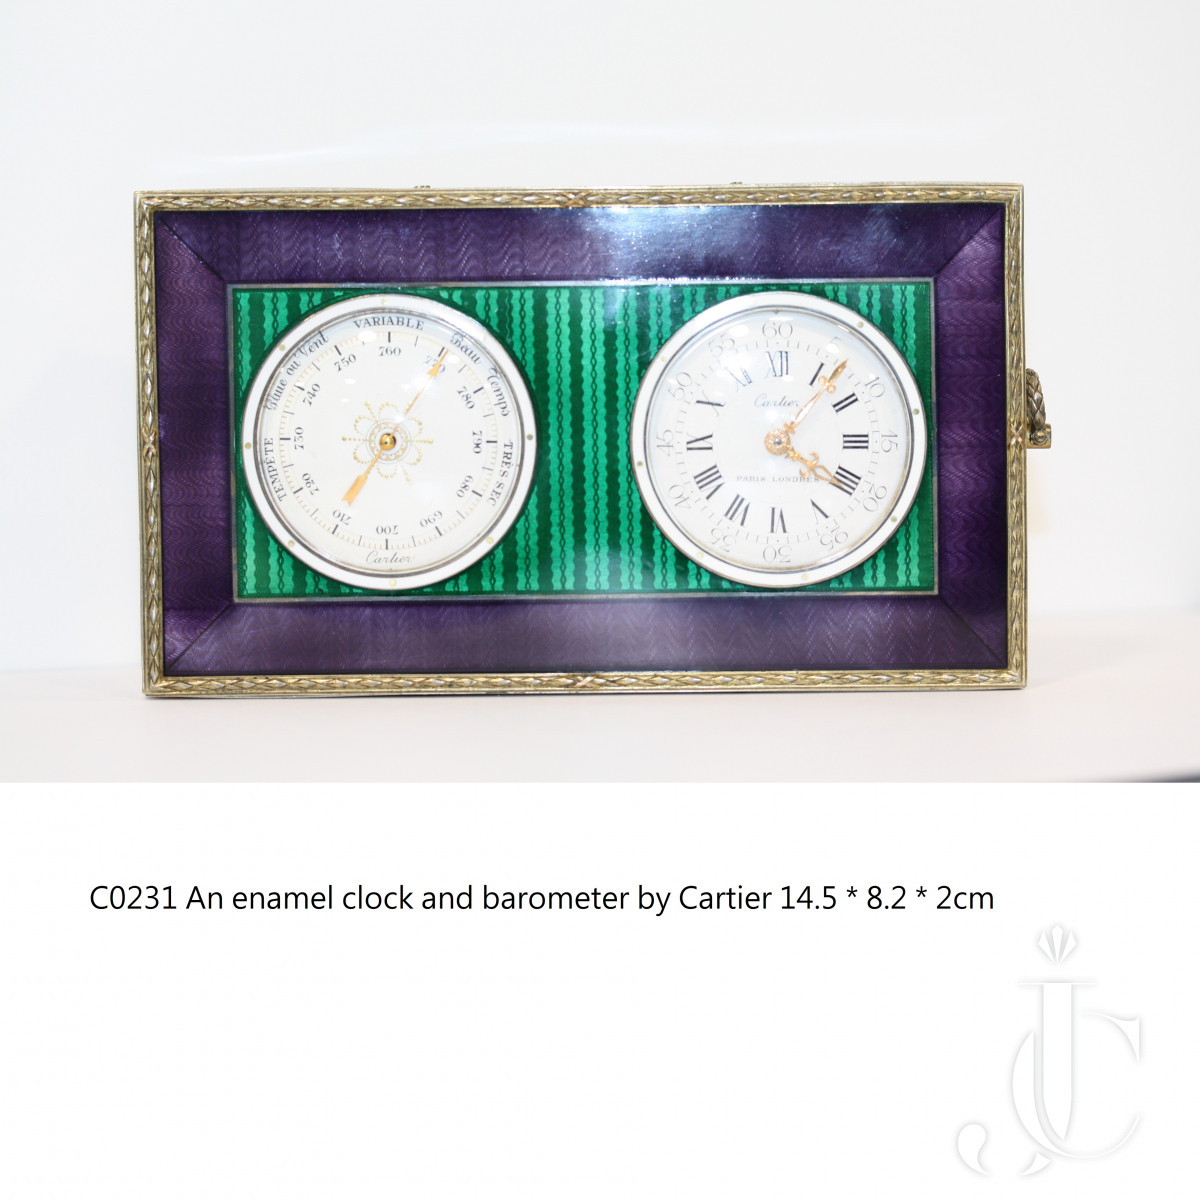 An 18k gold and silver enamel clock and barometer by Cartier